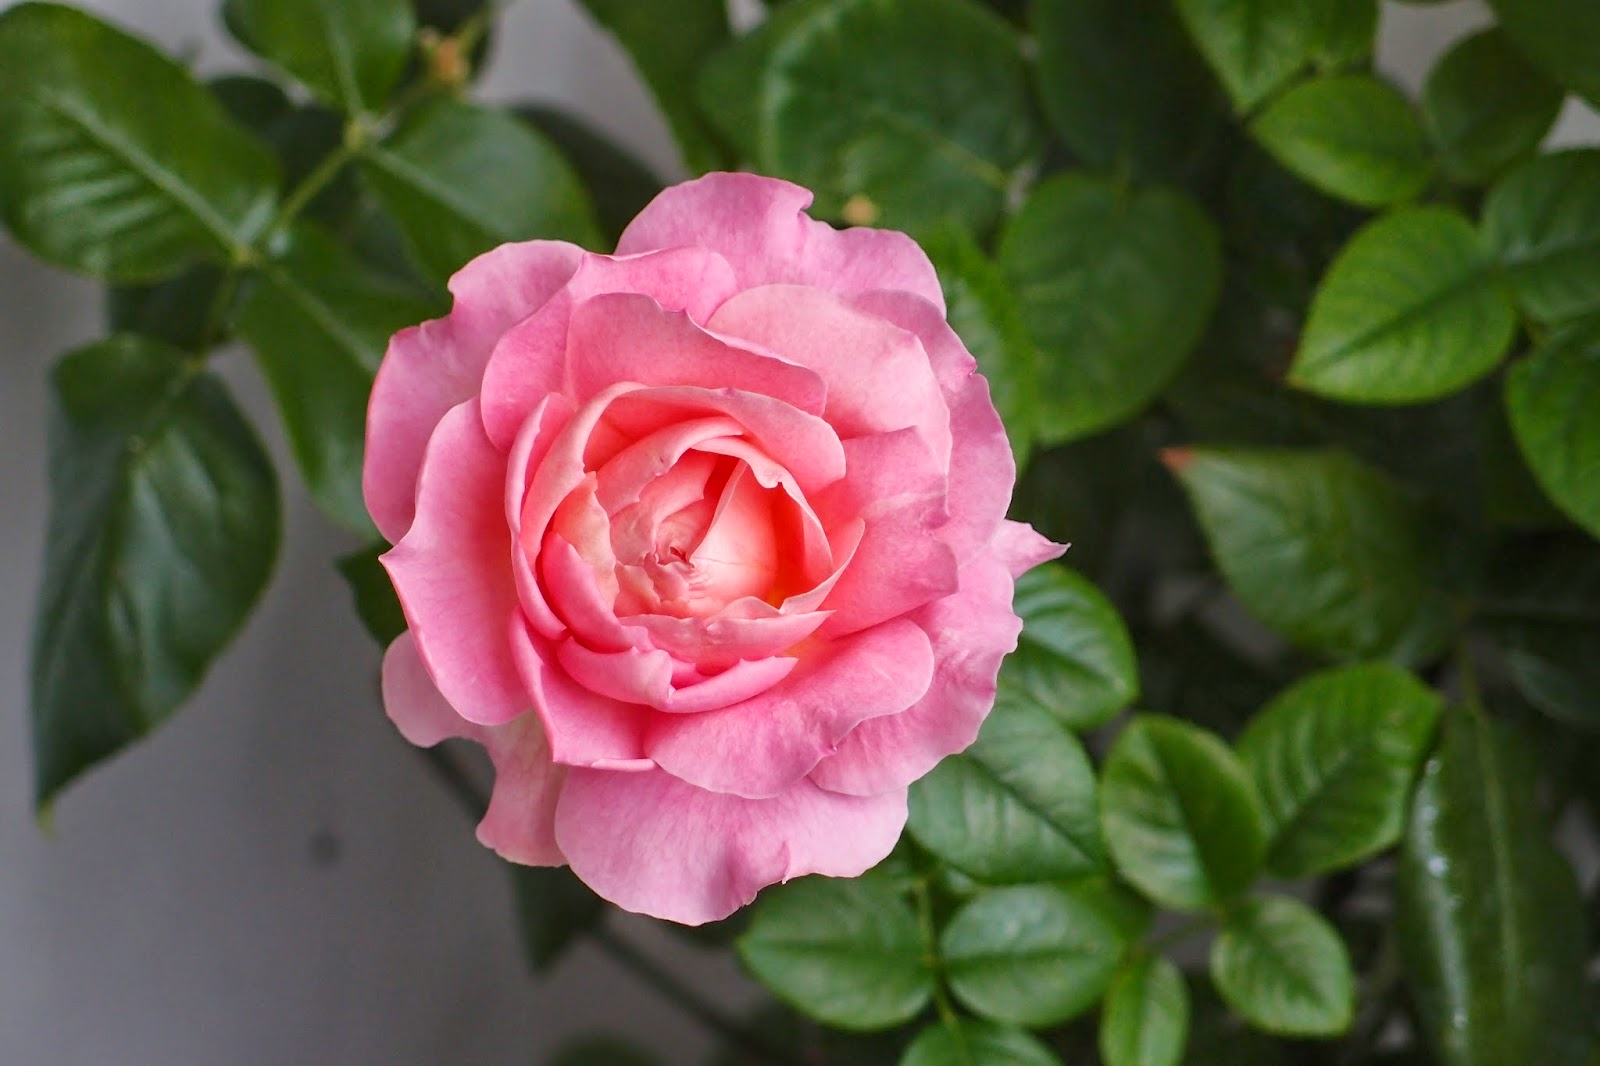 rose on the balcony today